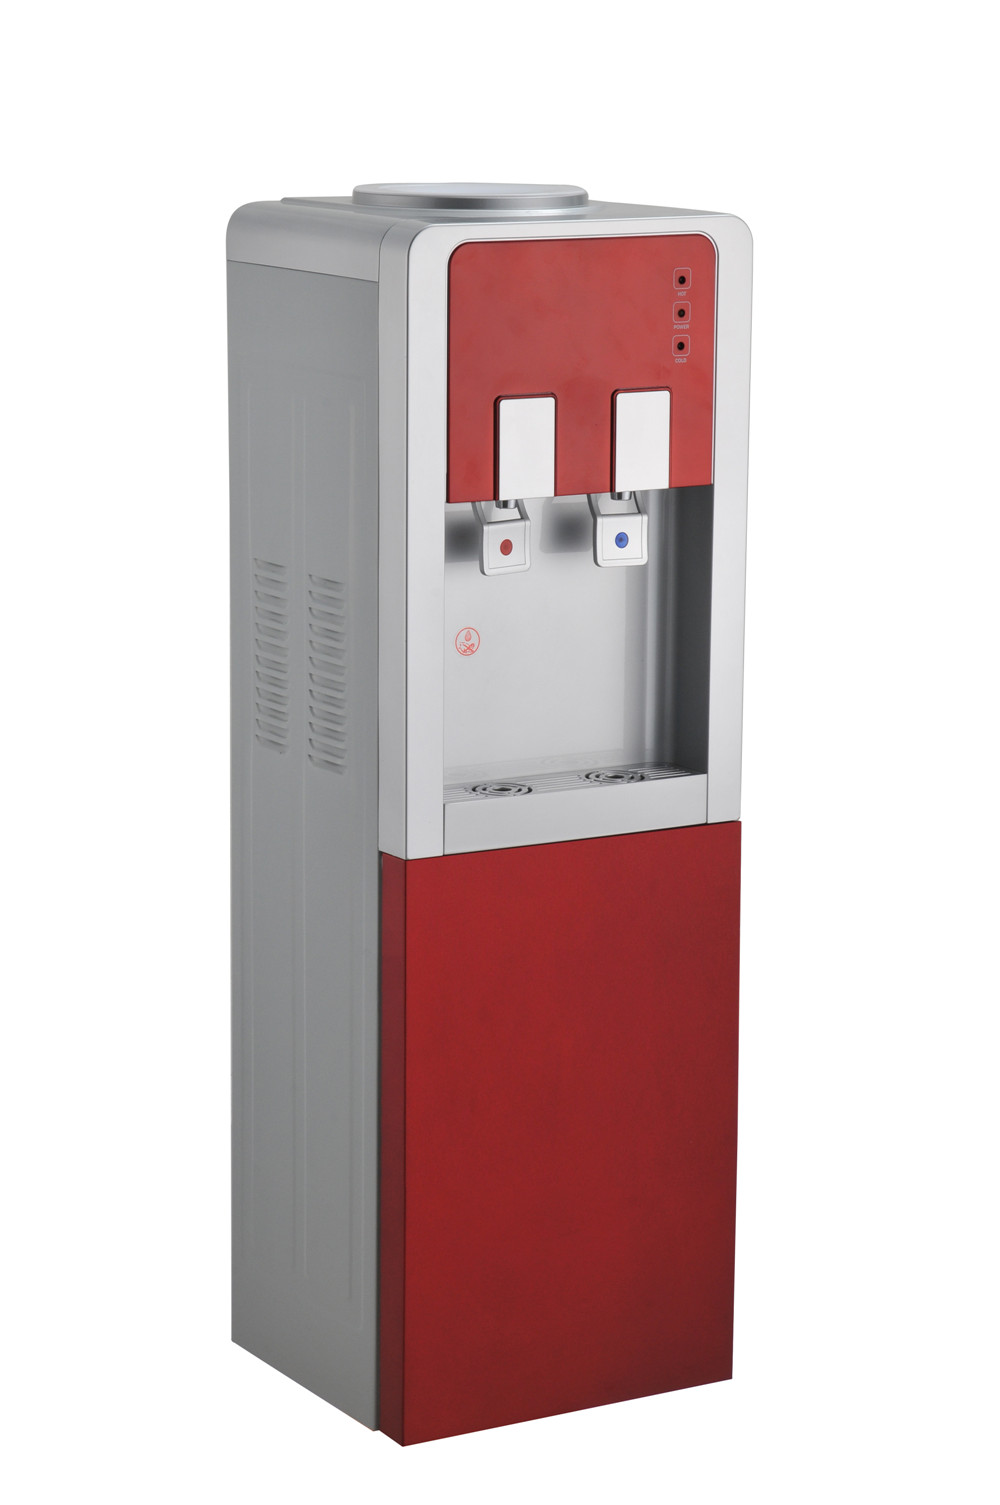 Vertical Type Water Dispenser Machine